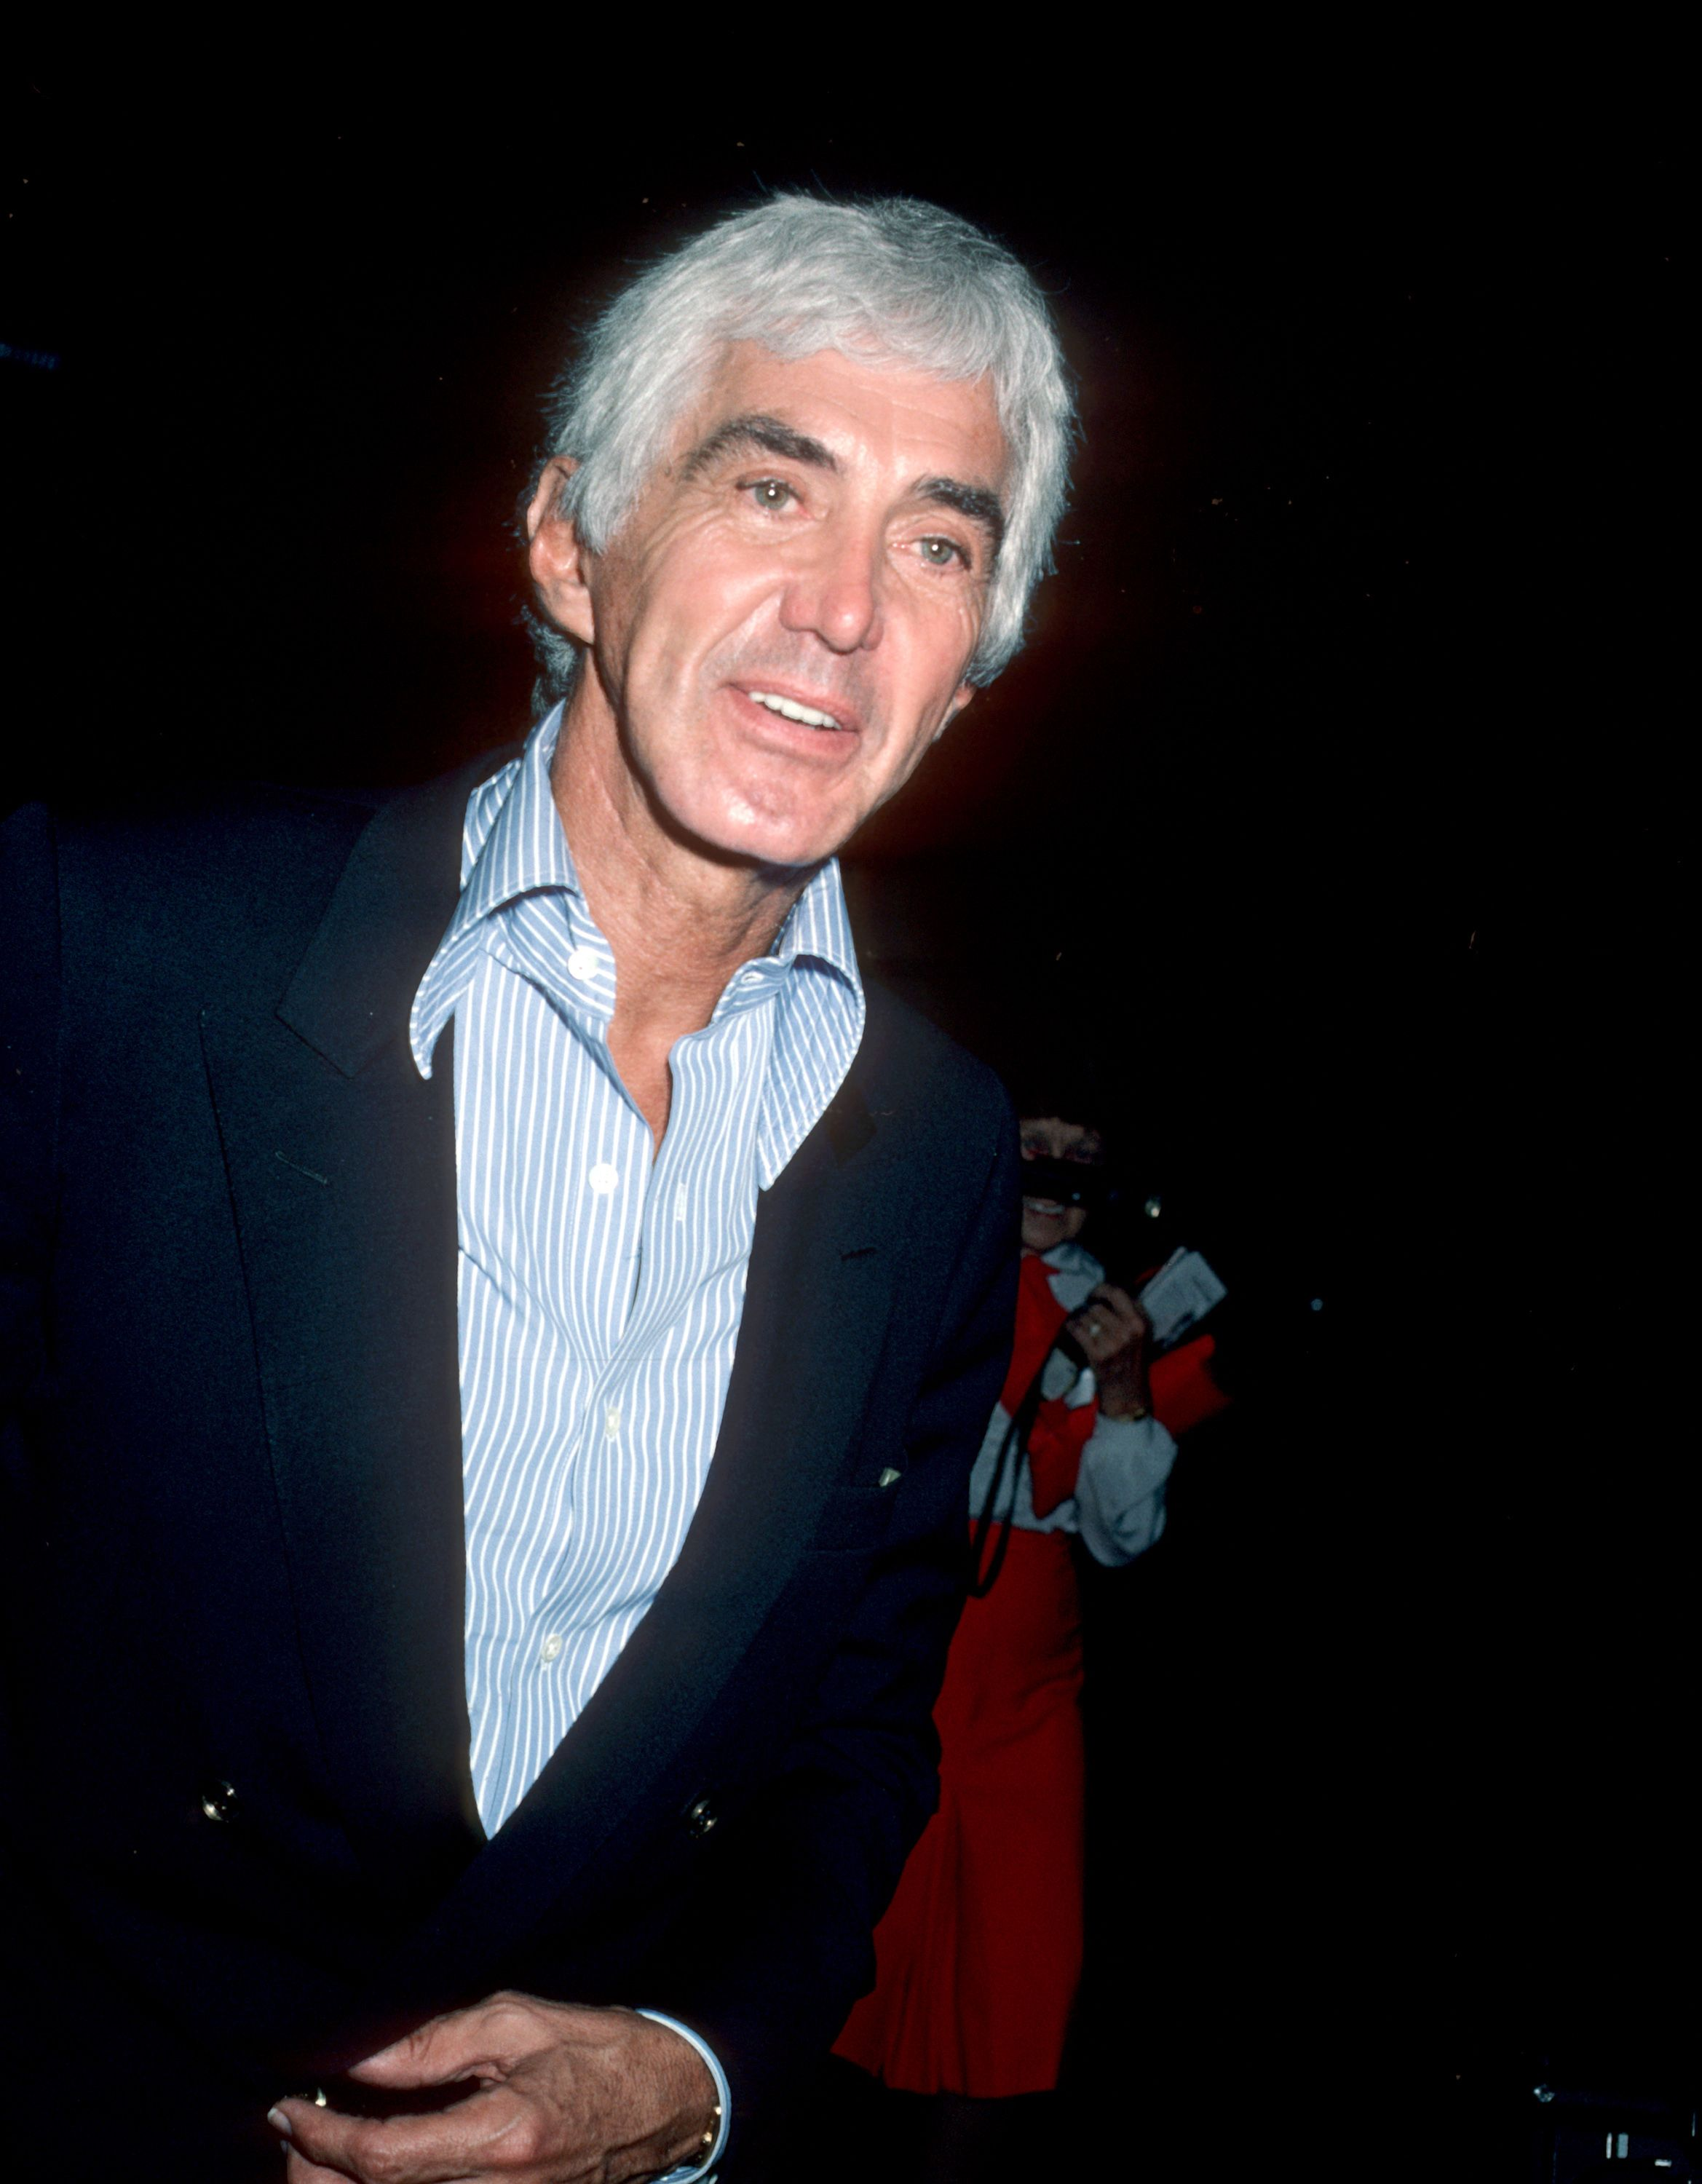 John DeLorean Departing from the Pierre Hotel - August 1, 1984